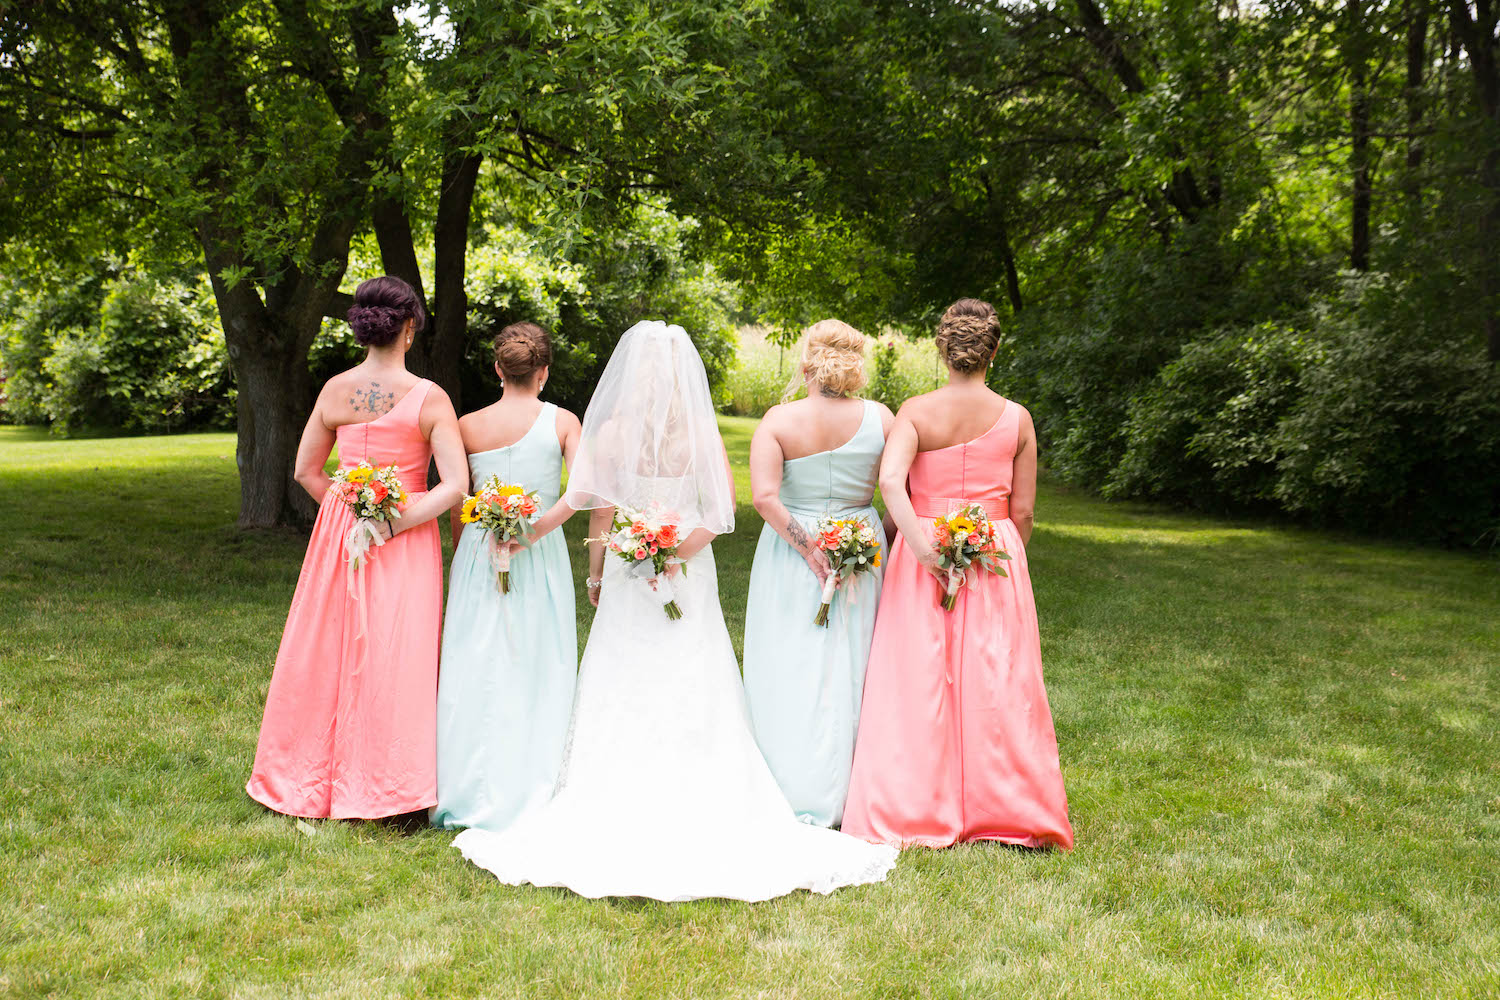 Cindyrellas Garden, outdoor lake ceremony in Minnesota, coral and mint bridesmaids dresses